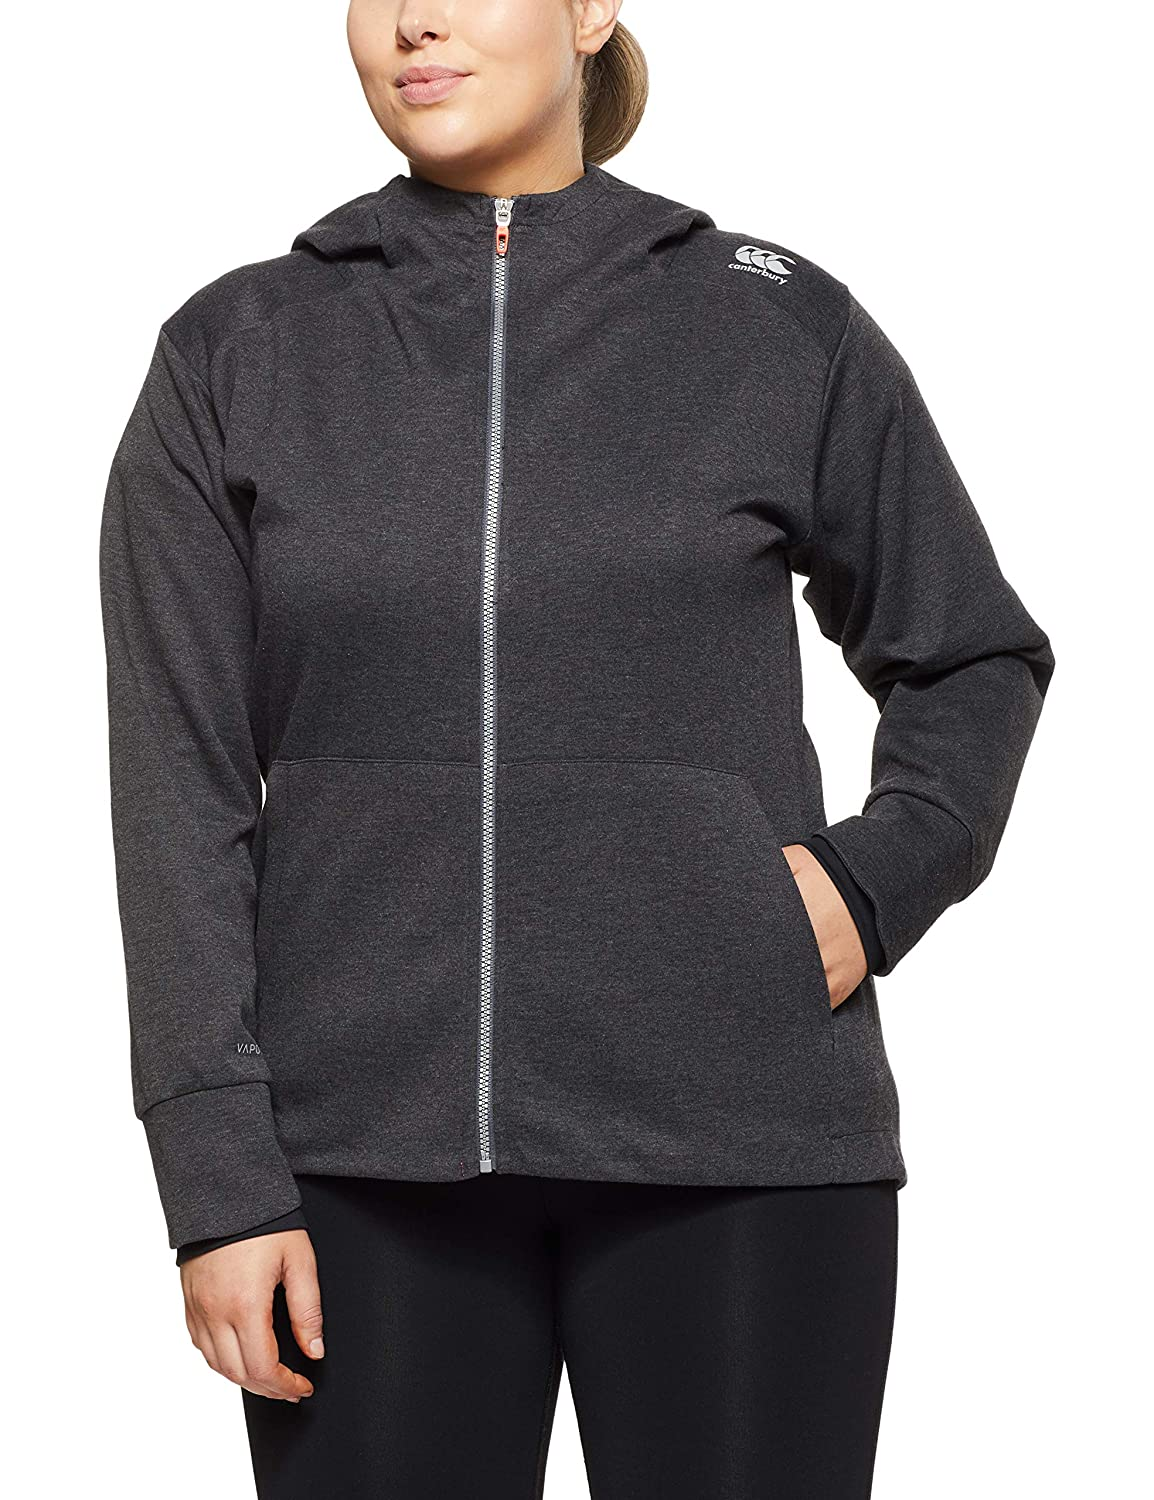 TALLA 10. Canterbury Vaposhield Zip Through Sudadera con Capucha, Mujer